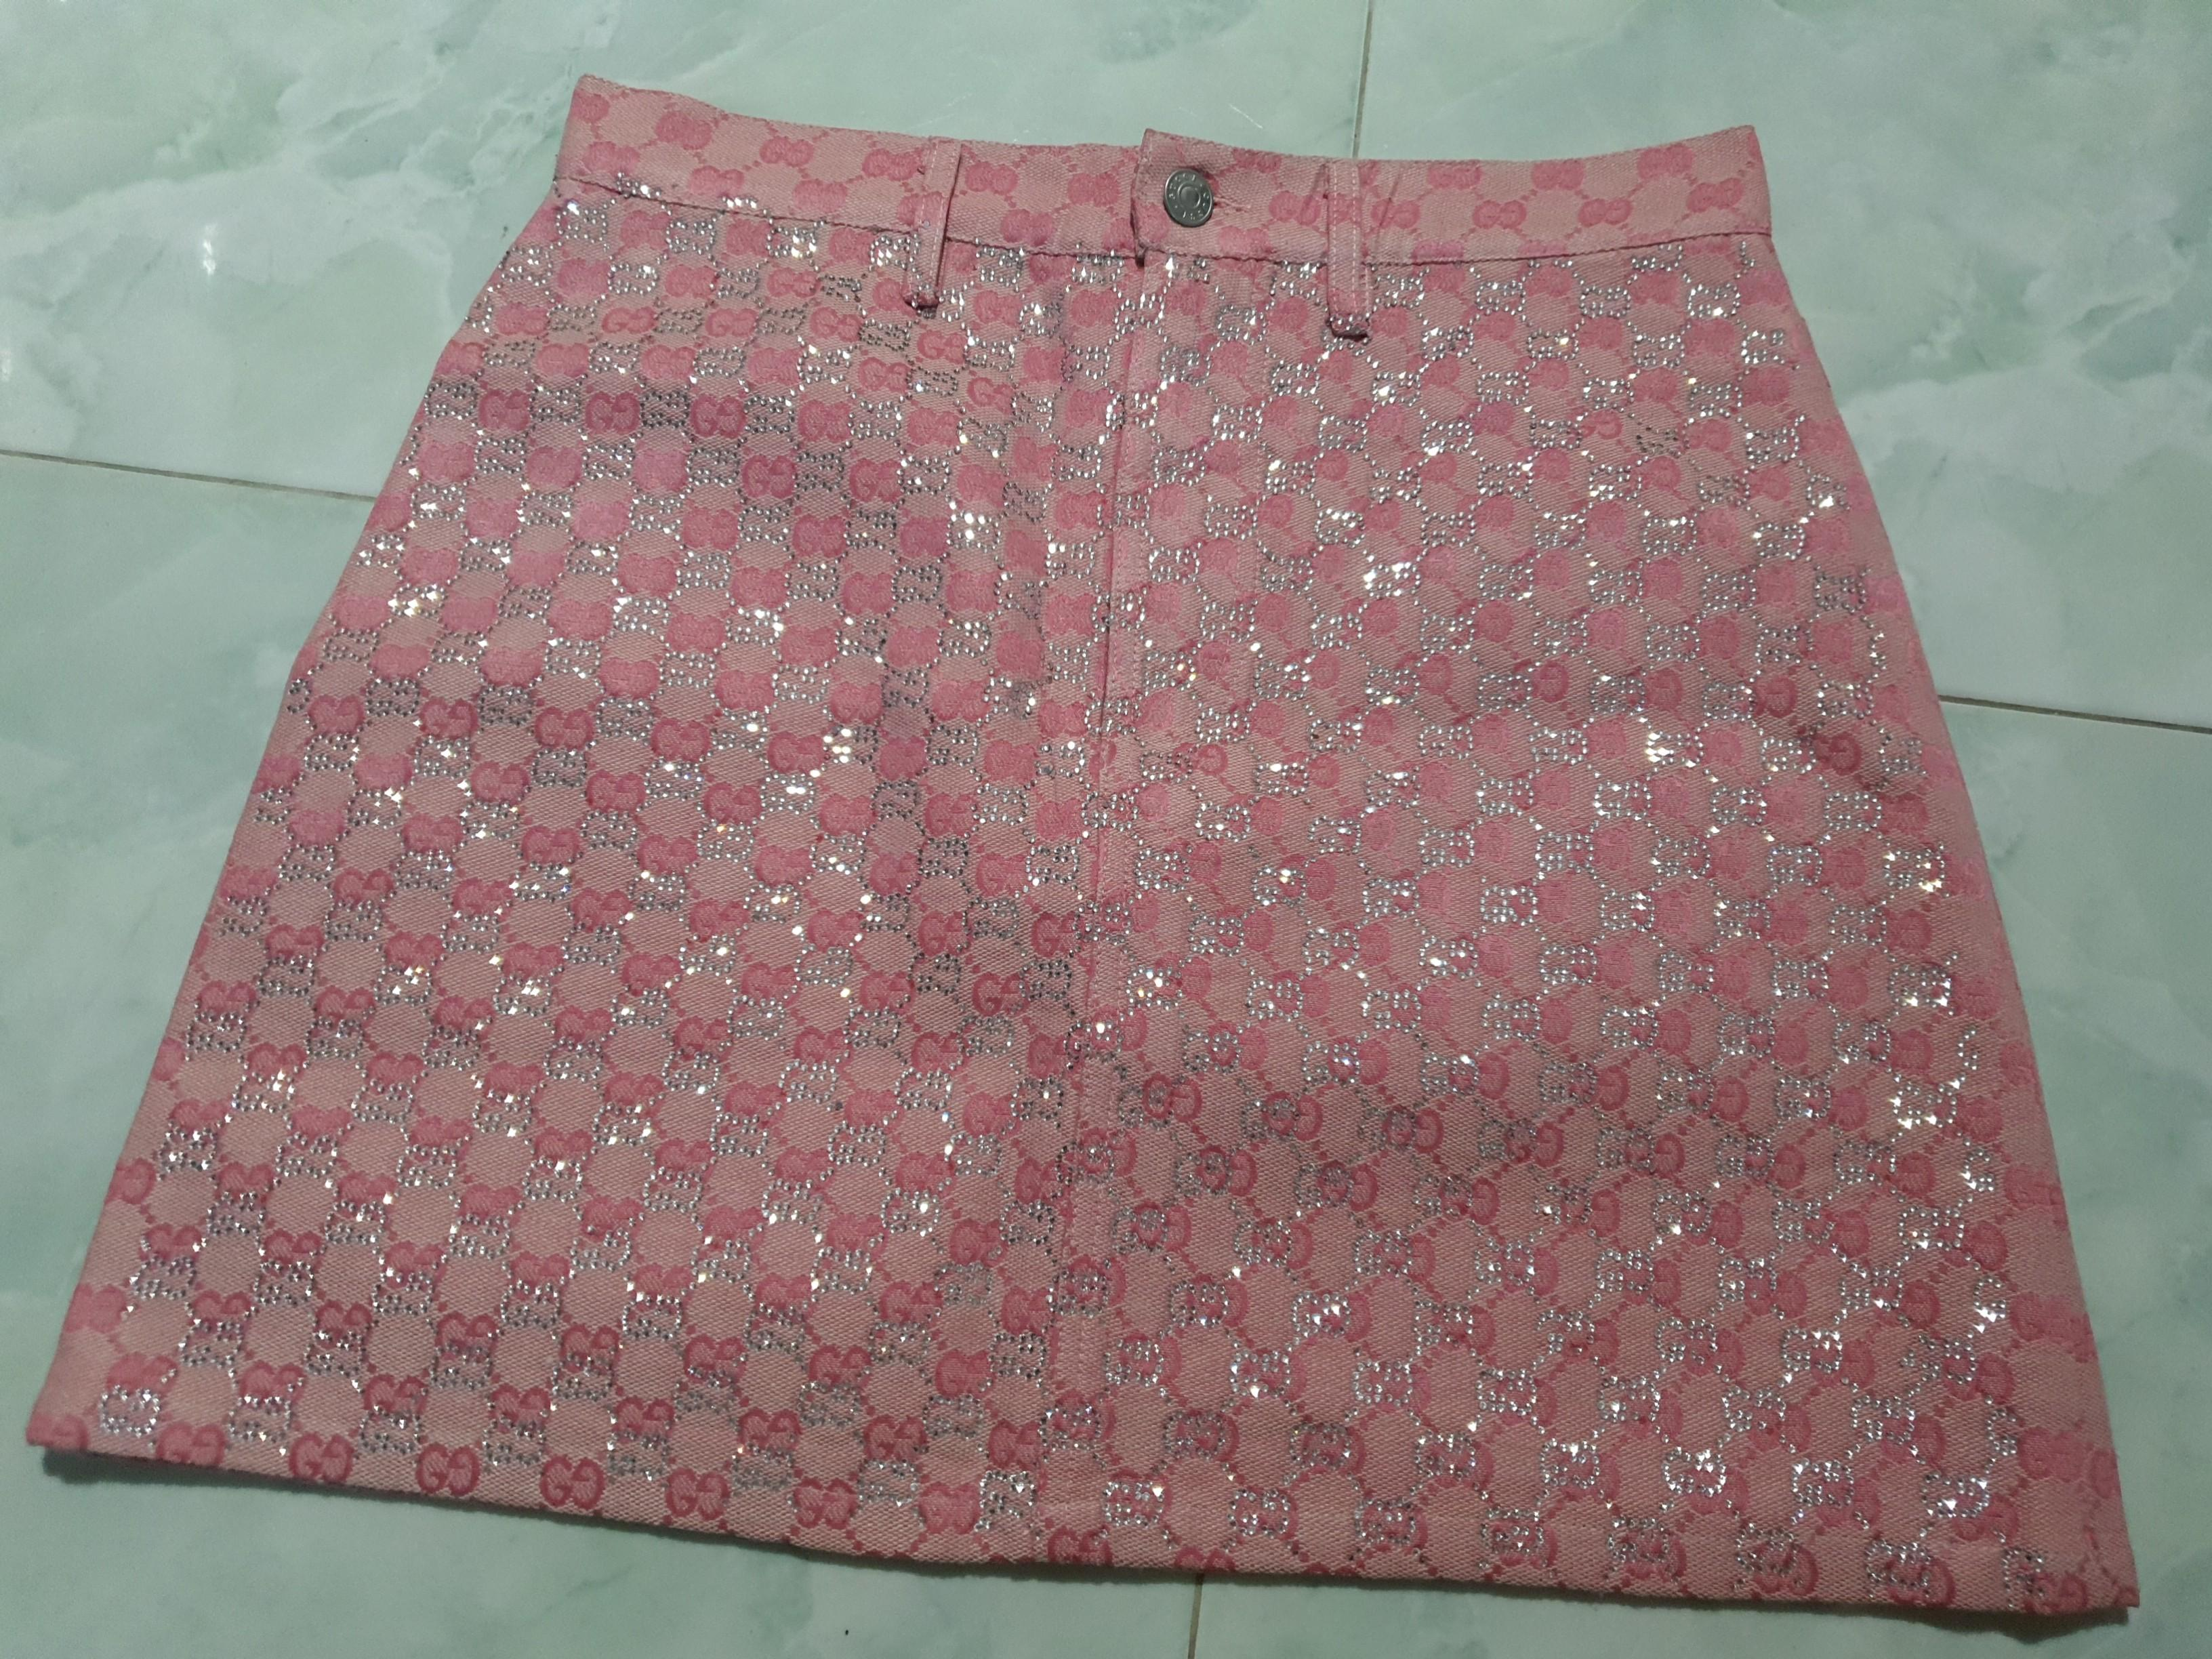 Brand new gucci pink skirt cut label S to M 28 to 29 inches